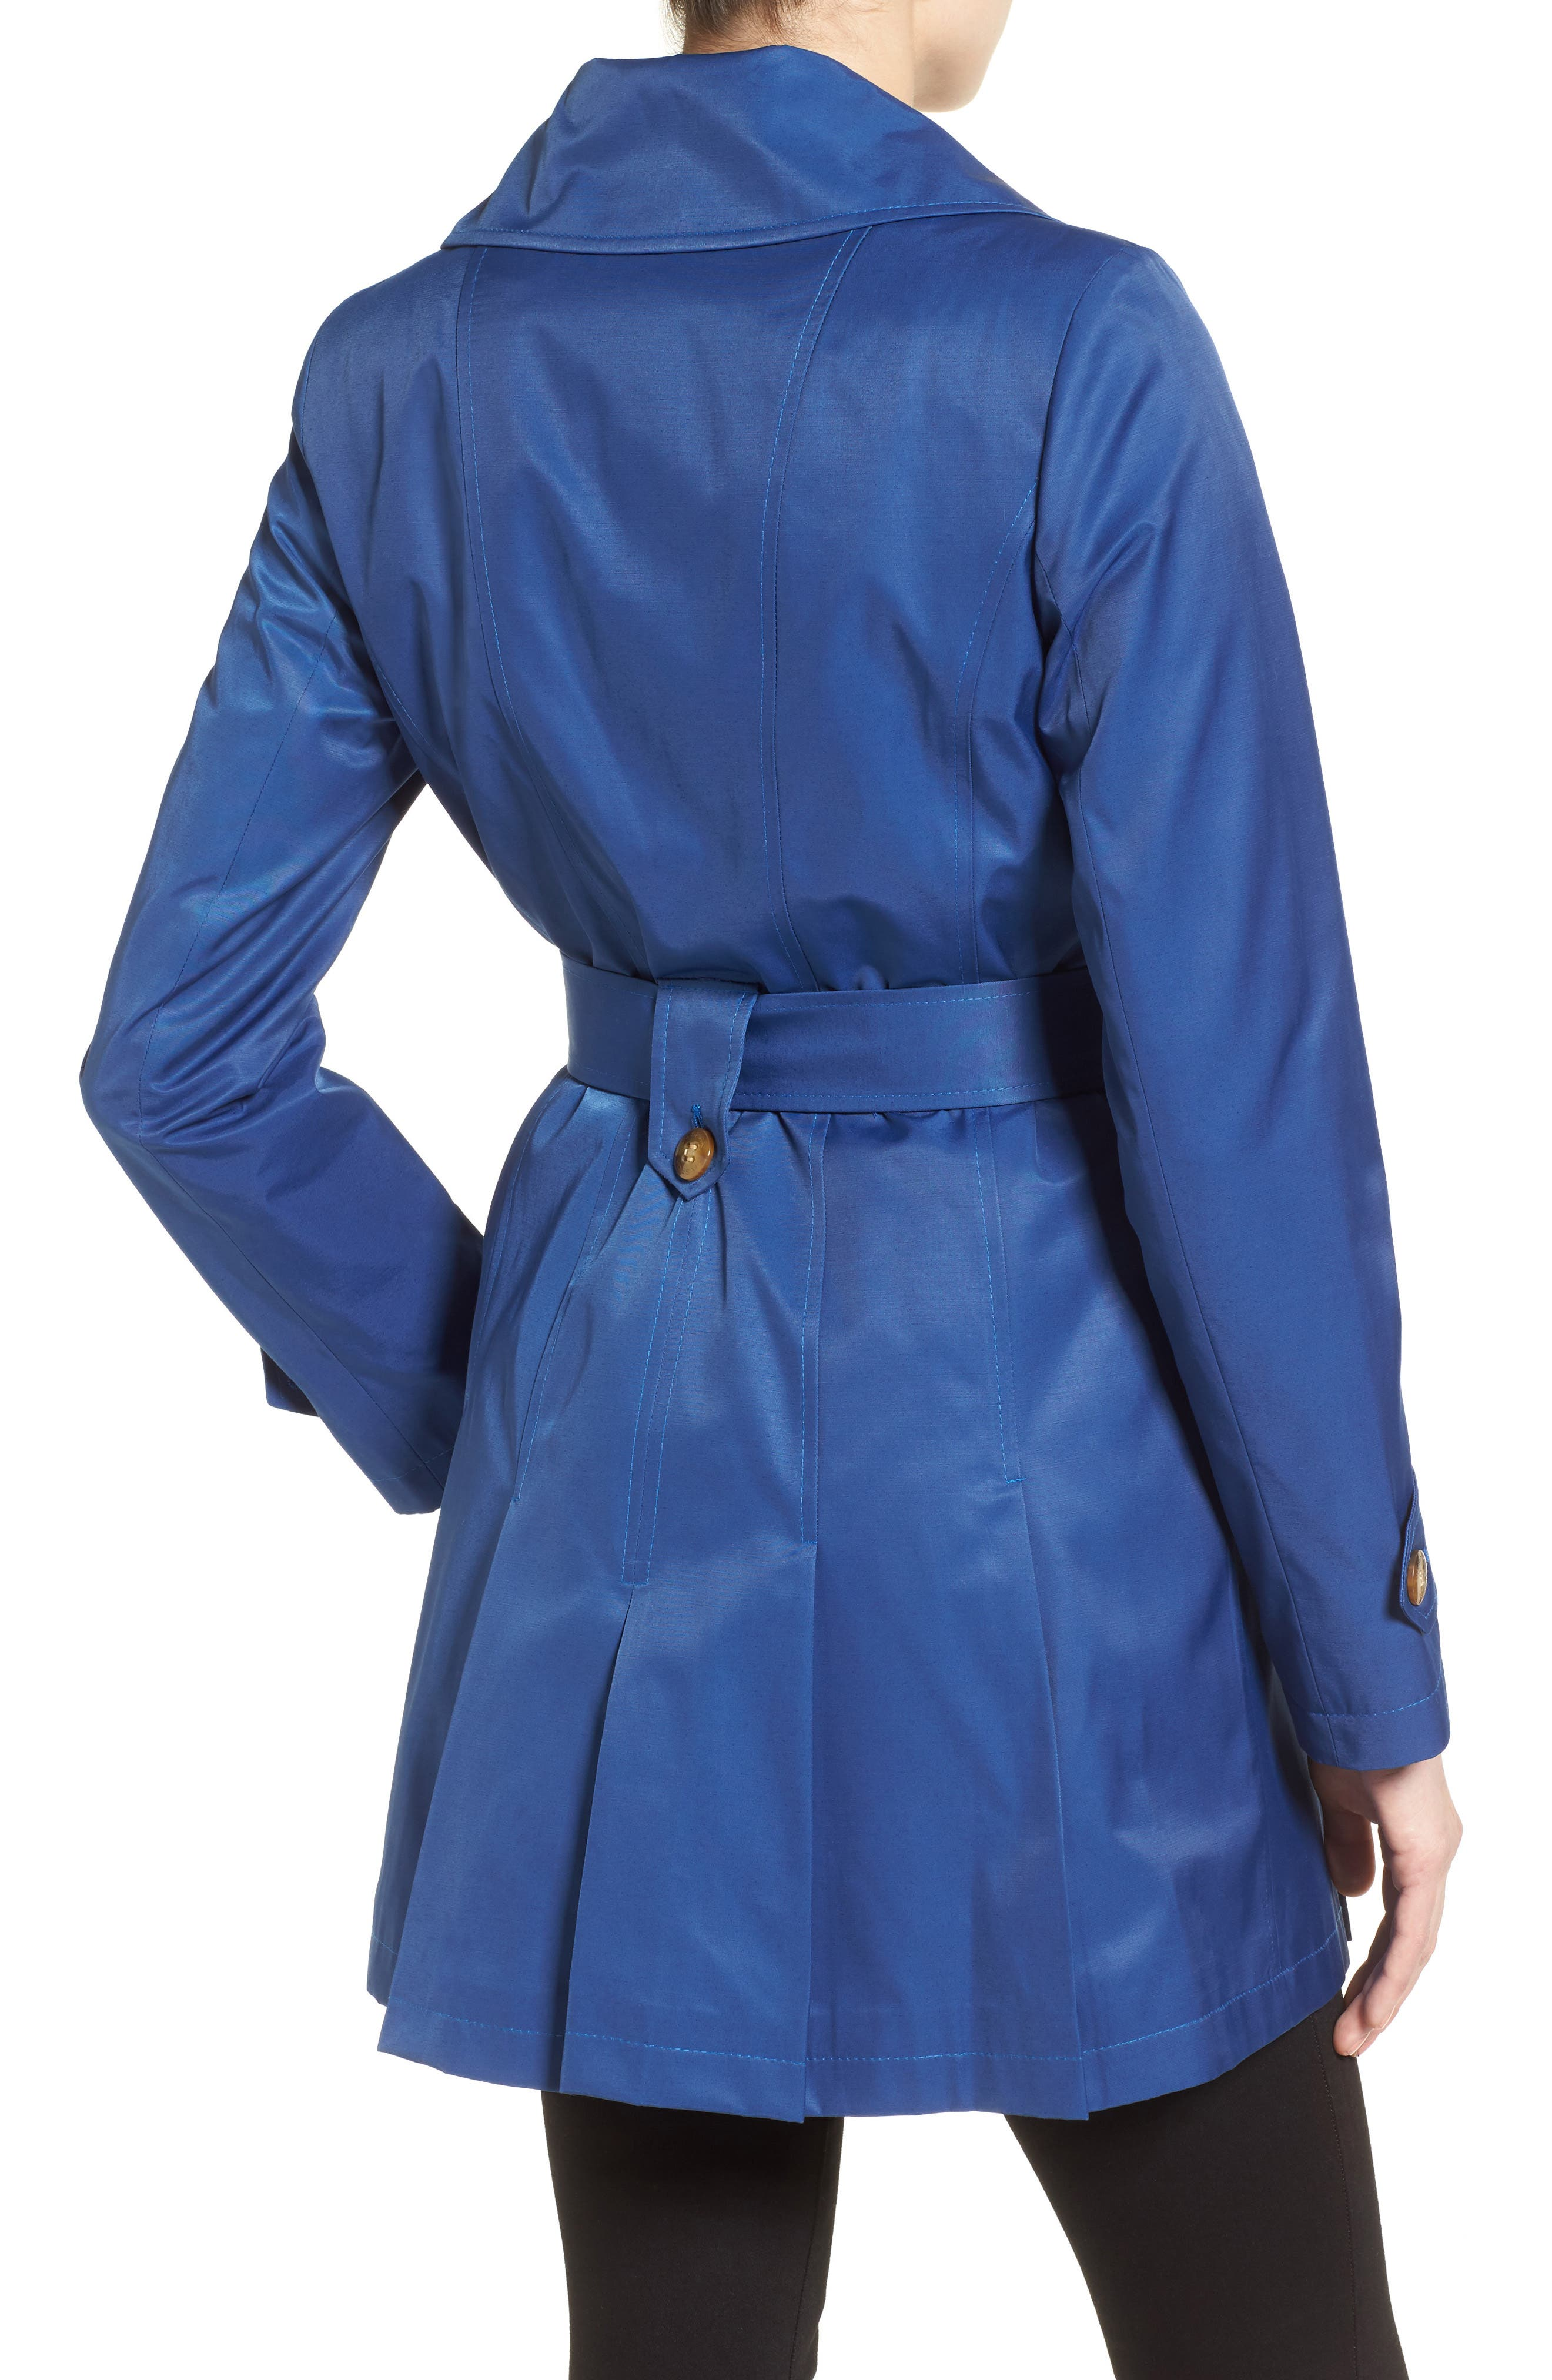 'Scarpa' Hooded Single Breasted Trench Coat,                             Alternate thumbnail 30, color,